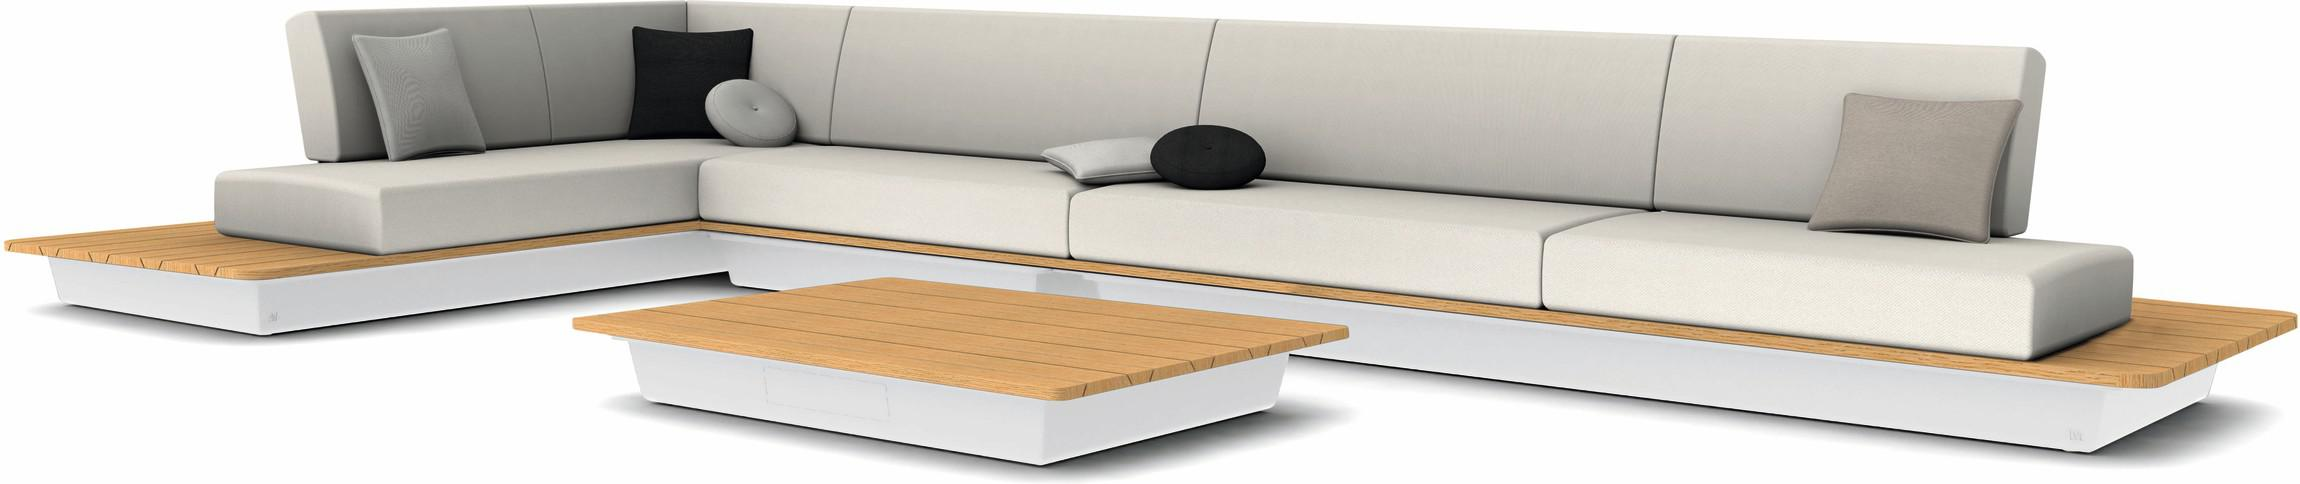 Air concept 2 - white - wood top iroko